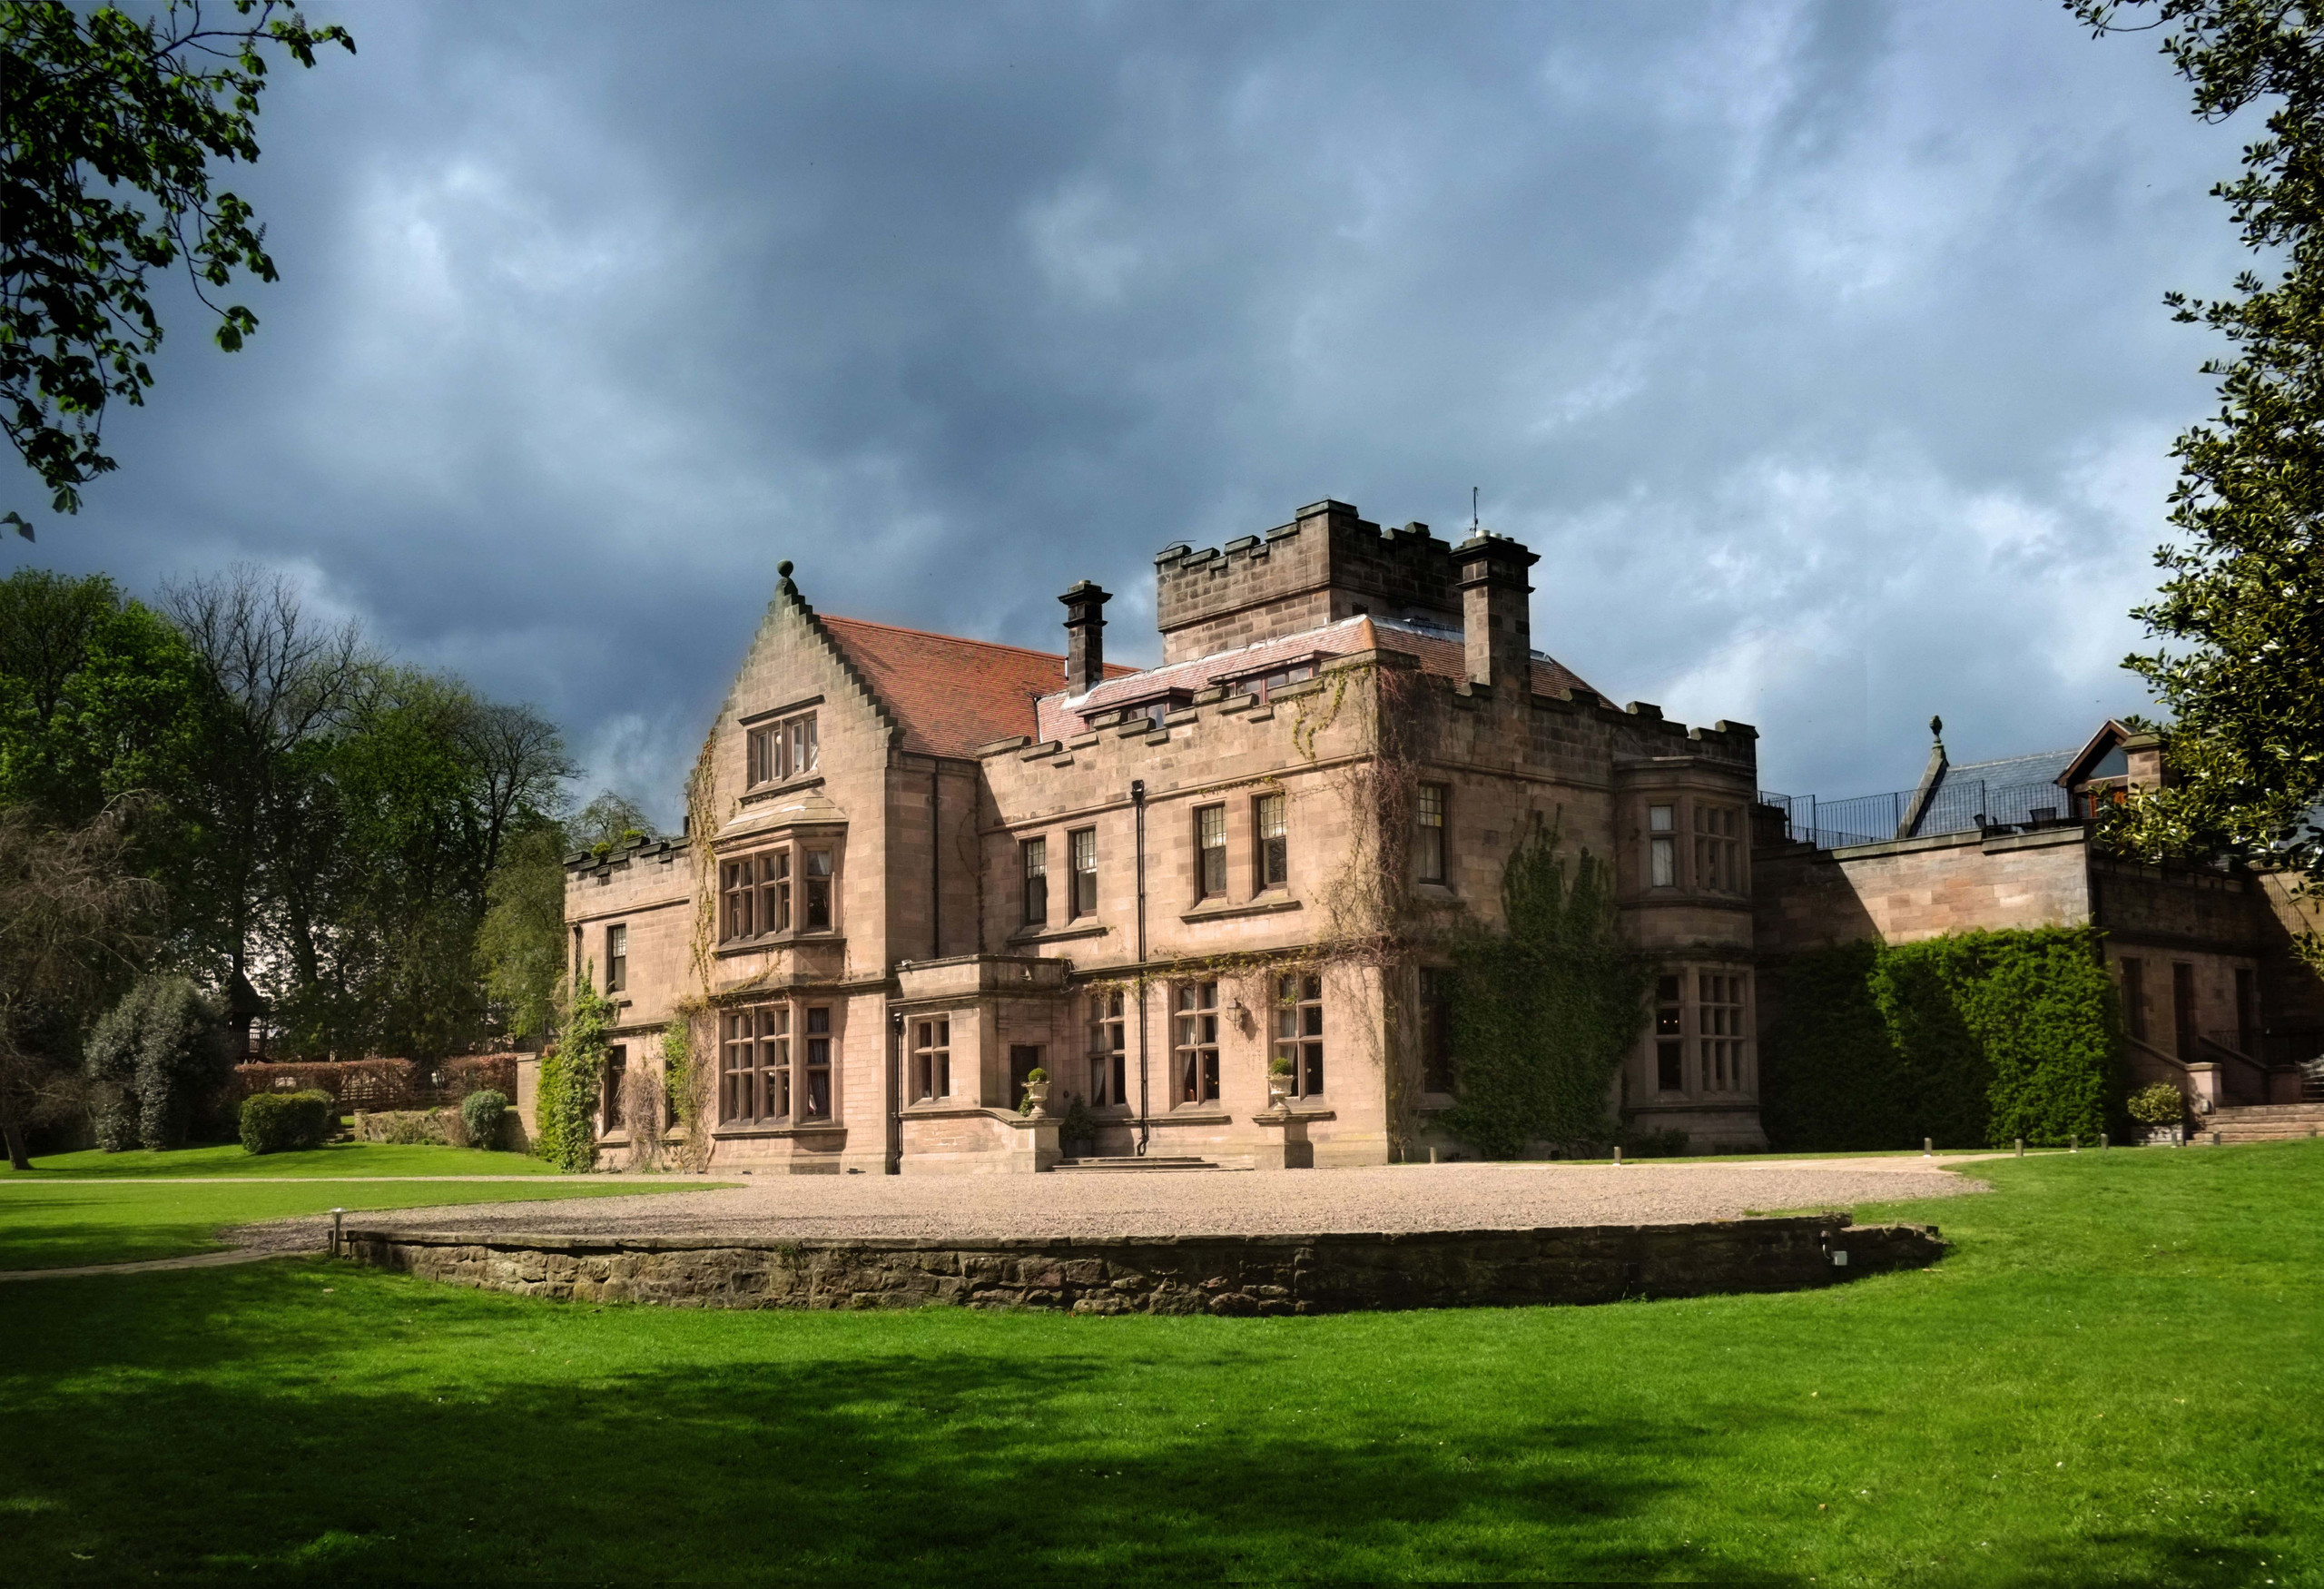 Photograph of wedding venue and country house Ellingham Hall in Chatham in Northumberland